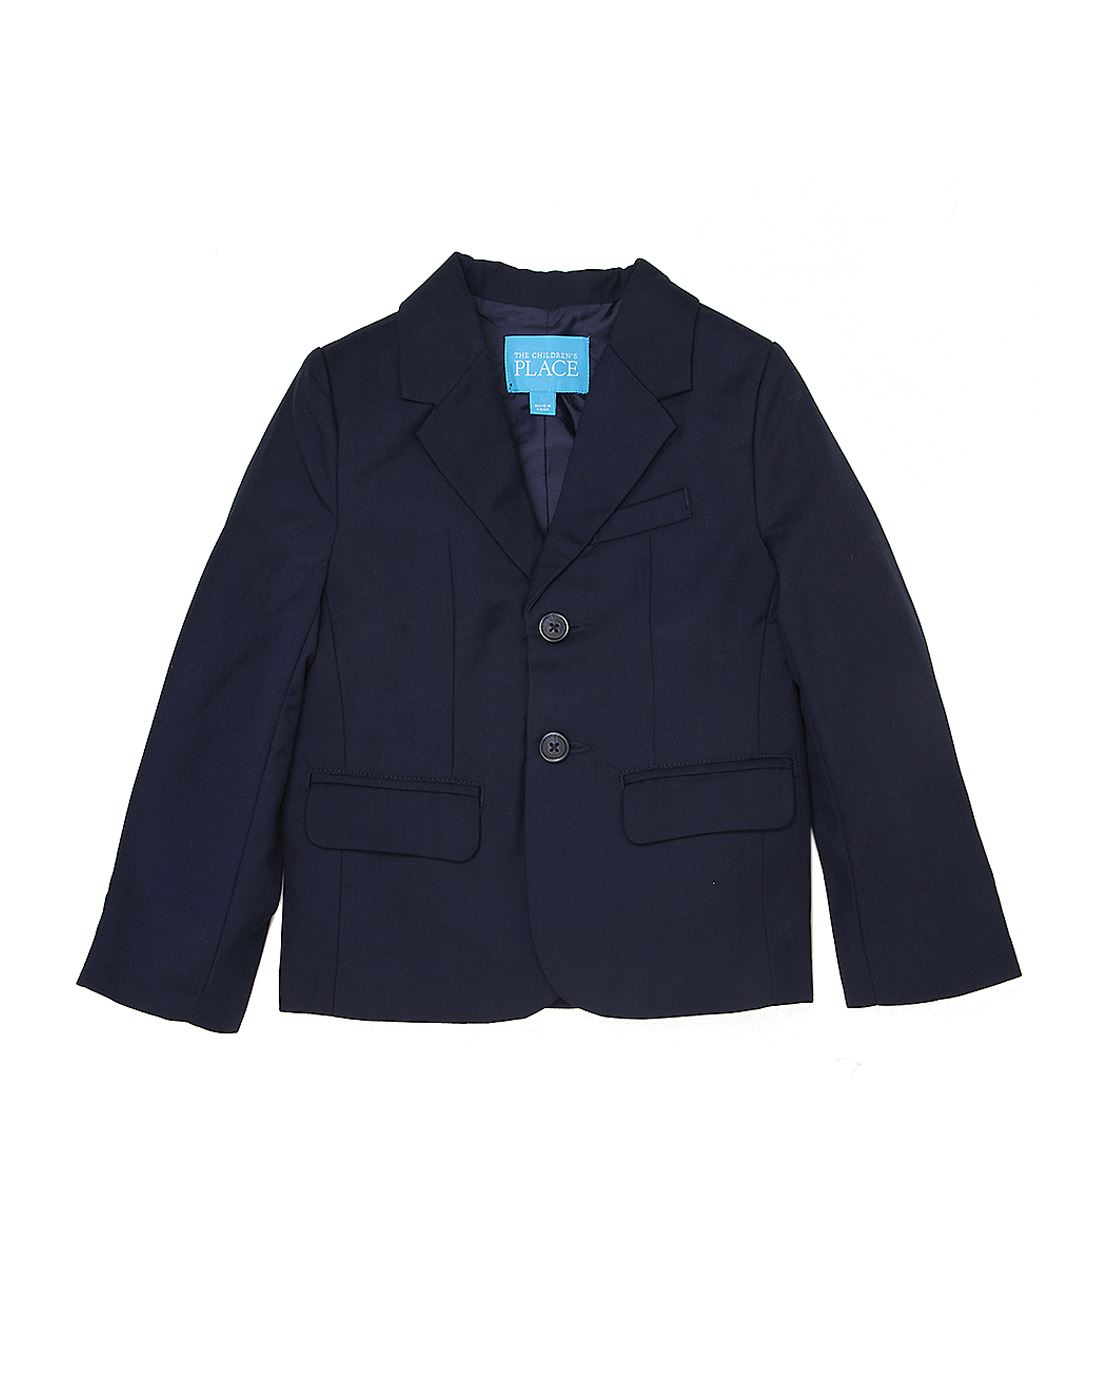 The Children's Place Boys Casual Black Blazer